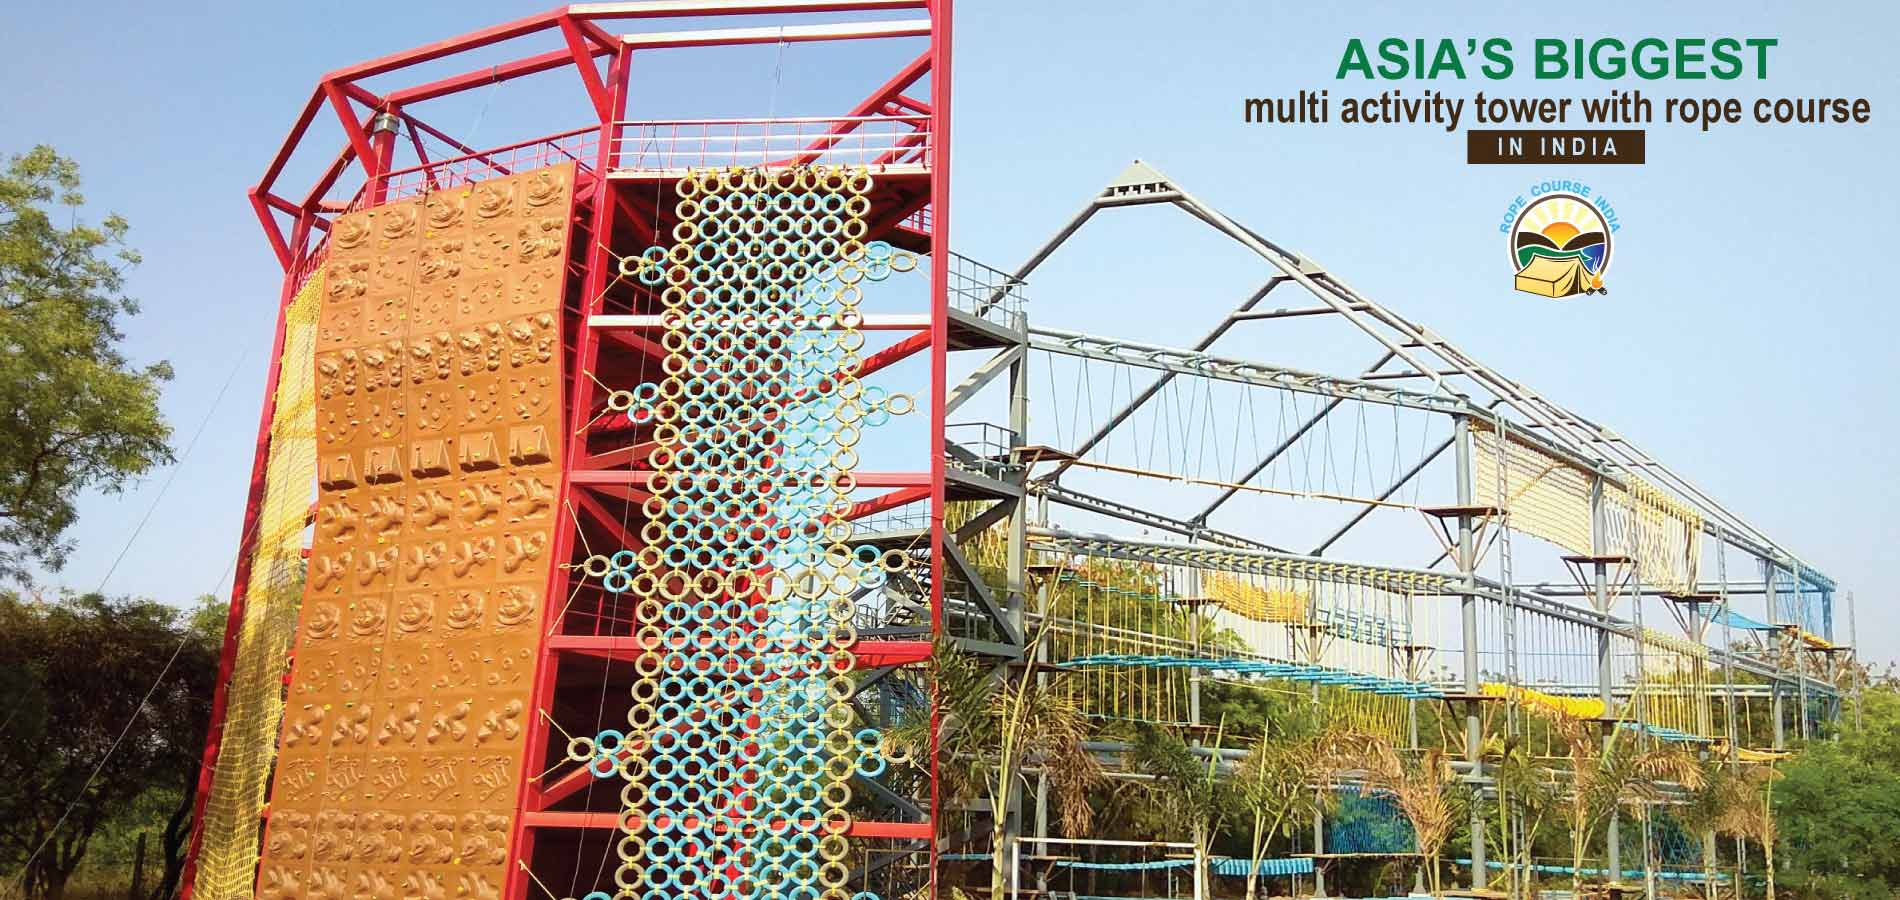 asia's biggest Multi Activity Tower with rope course